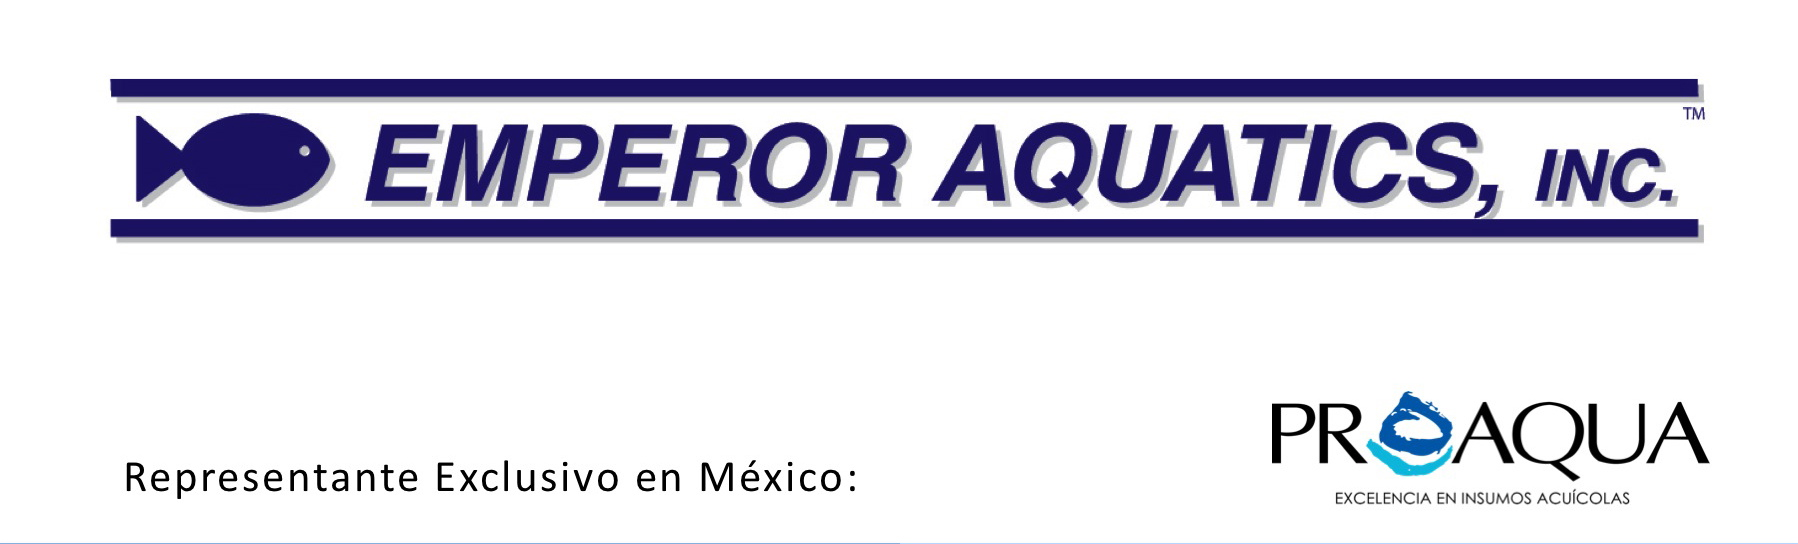 emperor-aquatics-proaqua-mexico-uv-systems.jpg